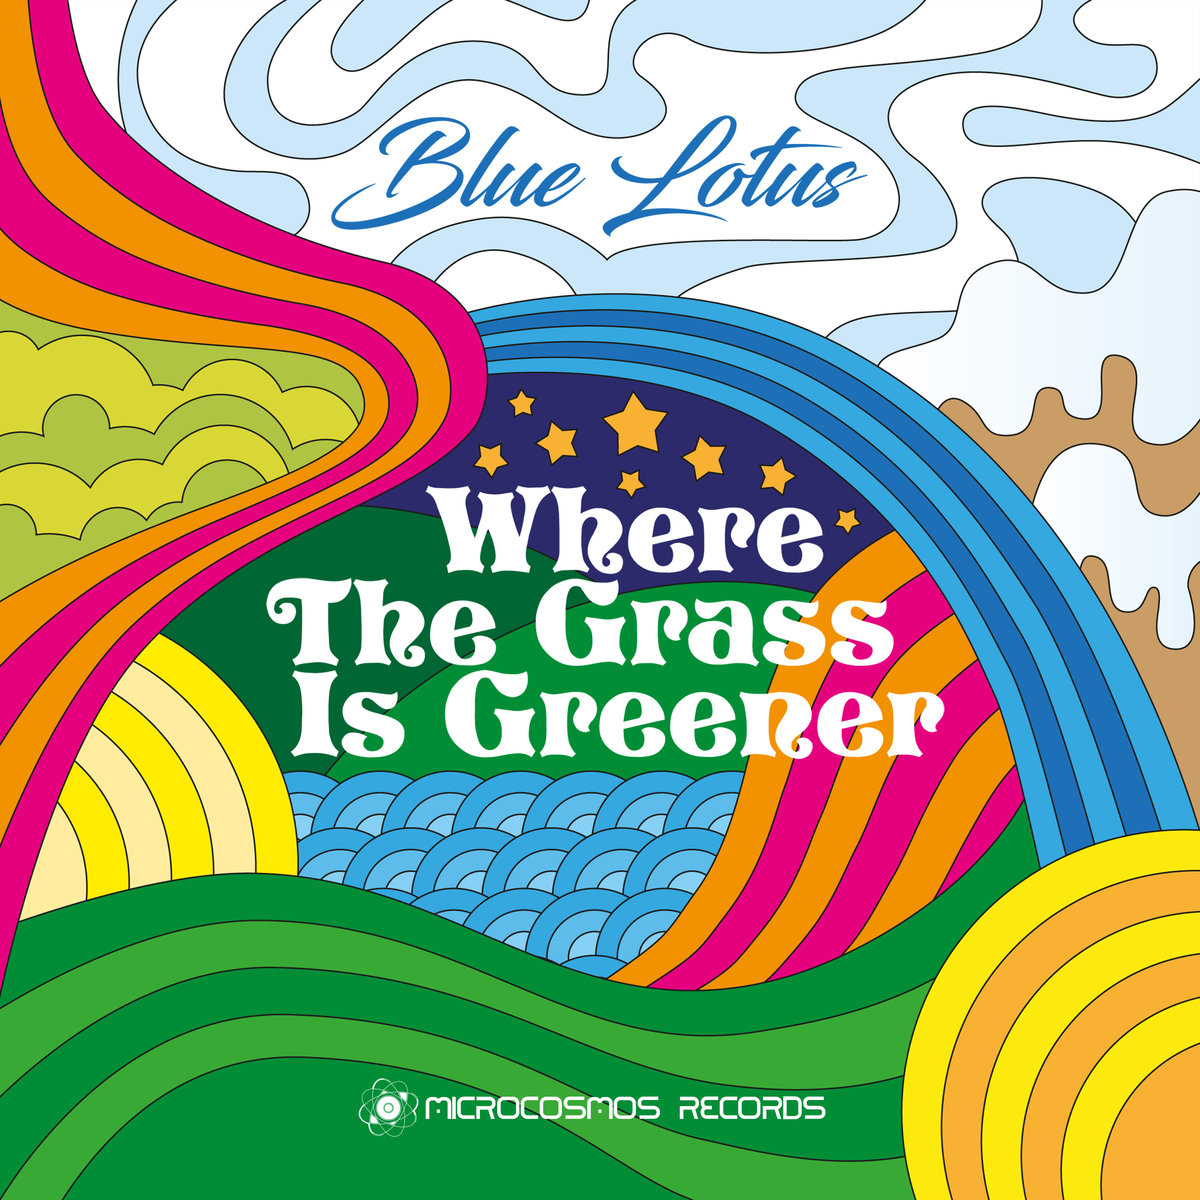 Blue Lotus - Go Up Where The Grass Is Greener @ 'Where The Grass Is Greener' album (ambient, chill-out)